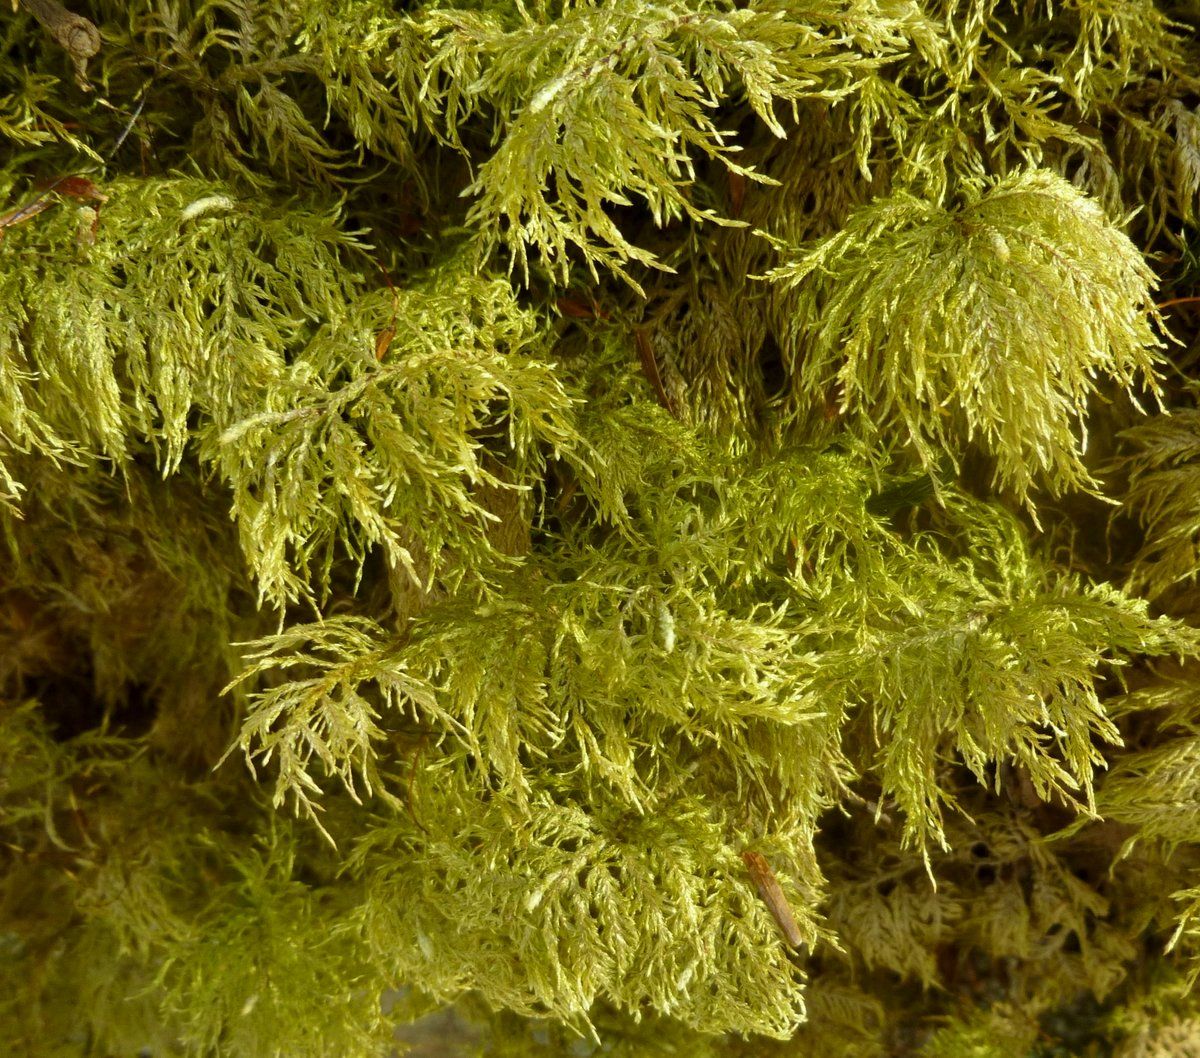 11. Stairstep Moss